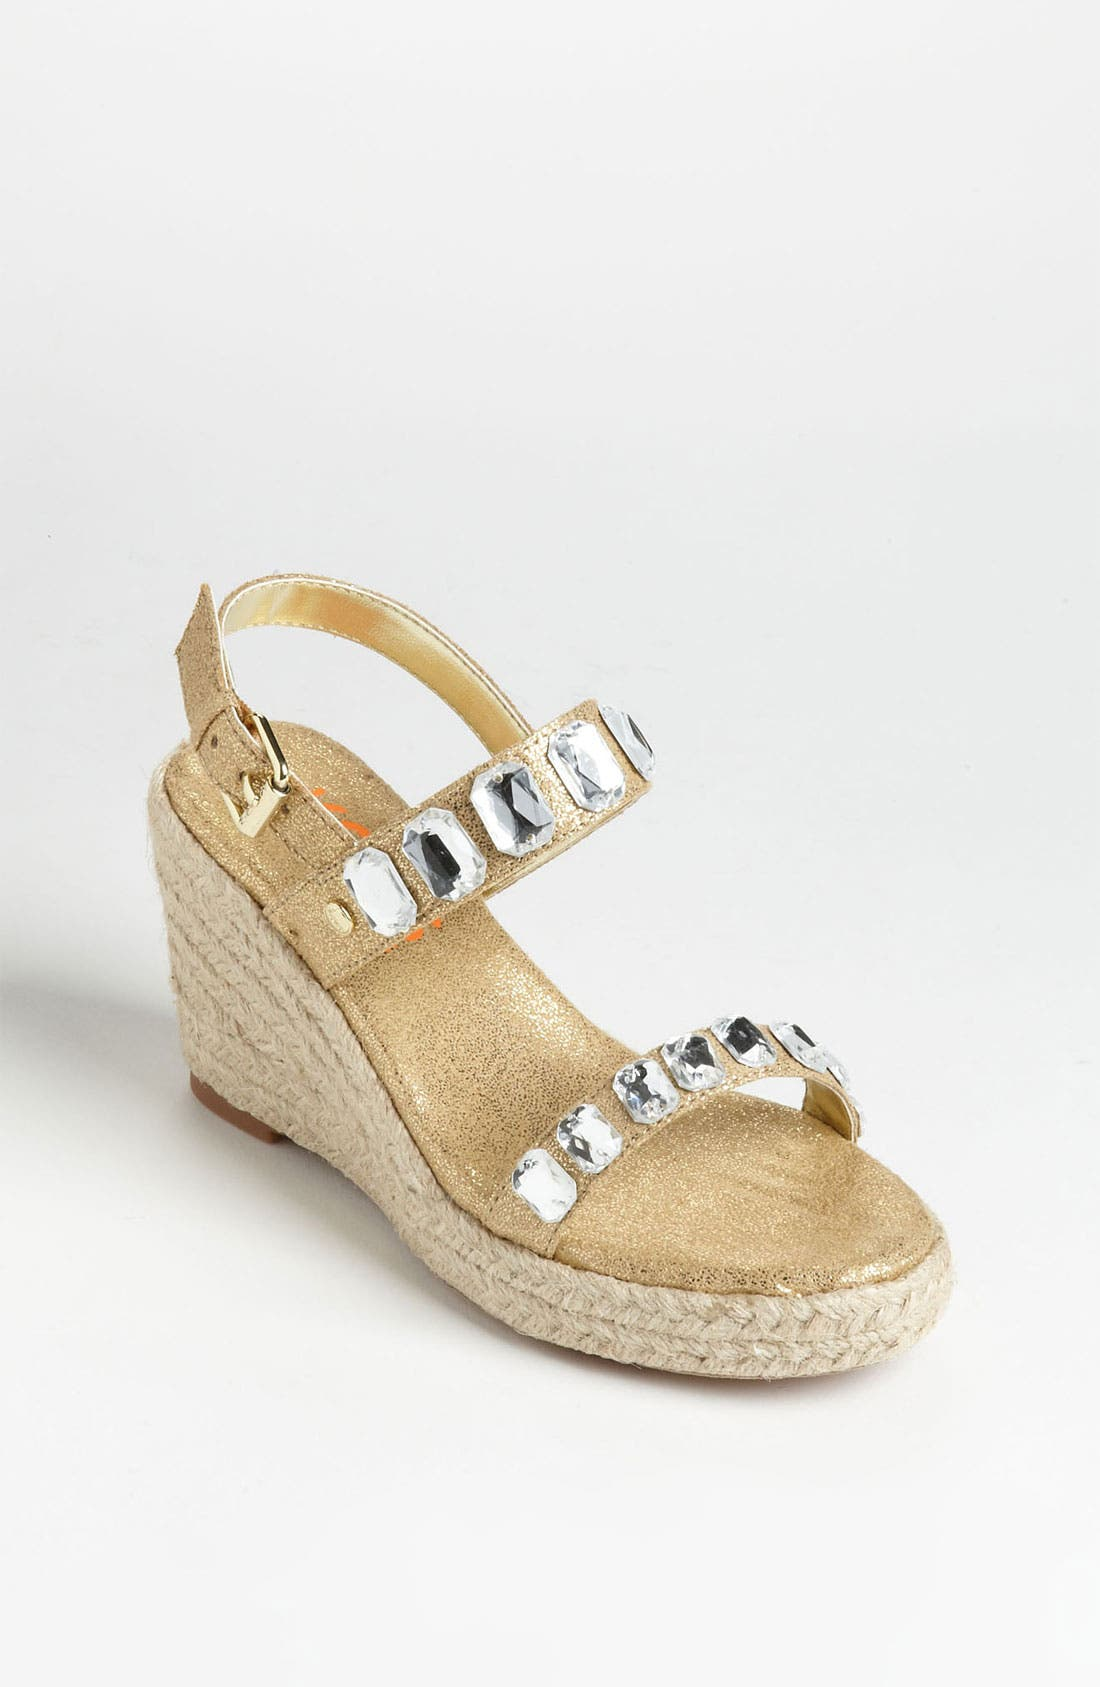 Alternate Image 1 Selected - KORS Michael Kors 'Atlantis' Sandal (Little Kid & Big Kid)